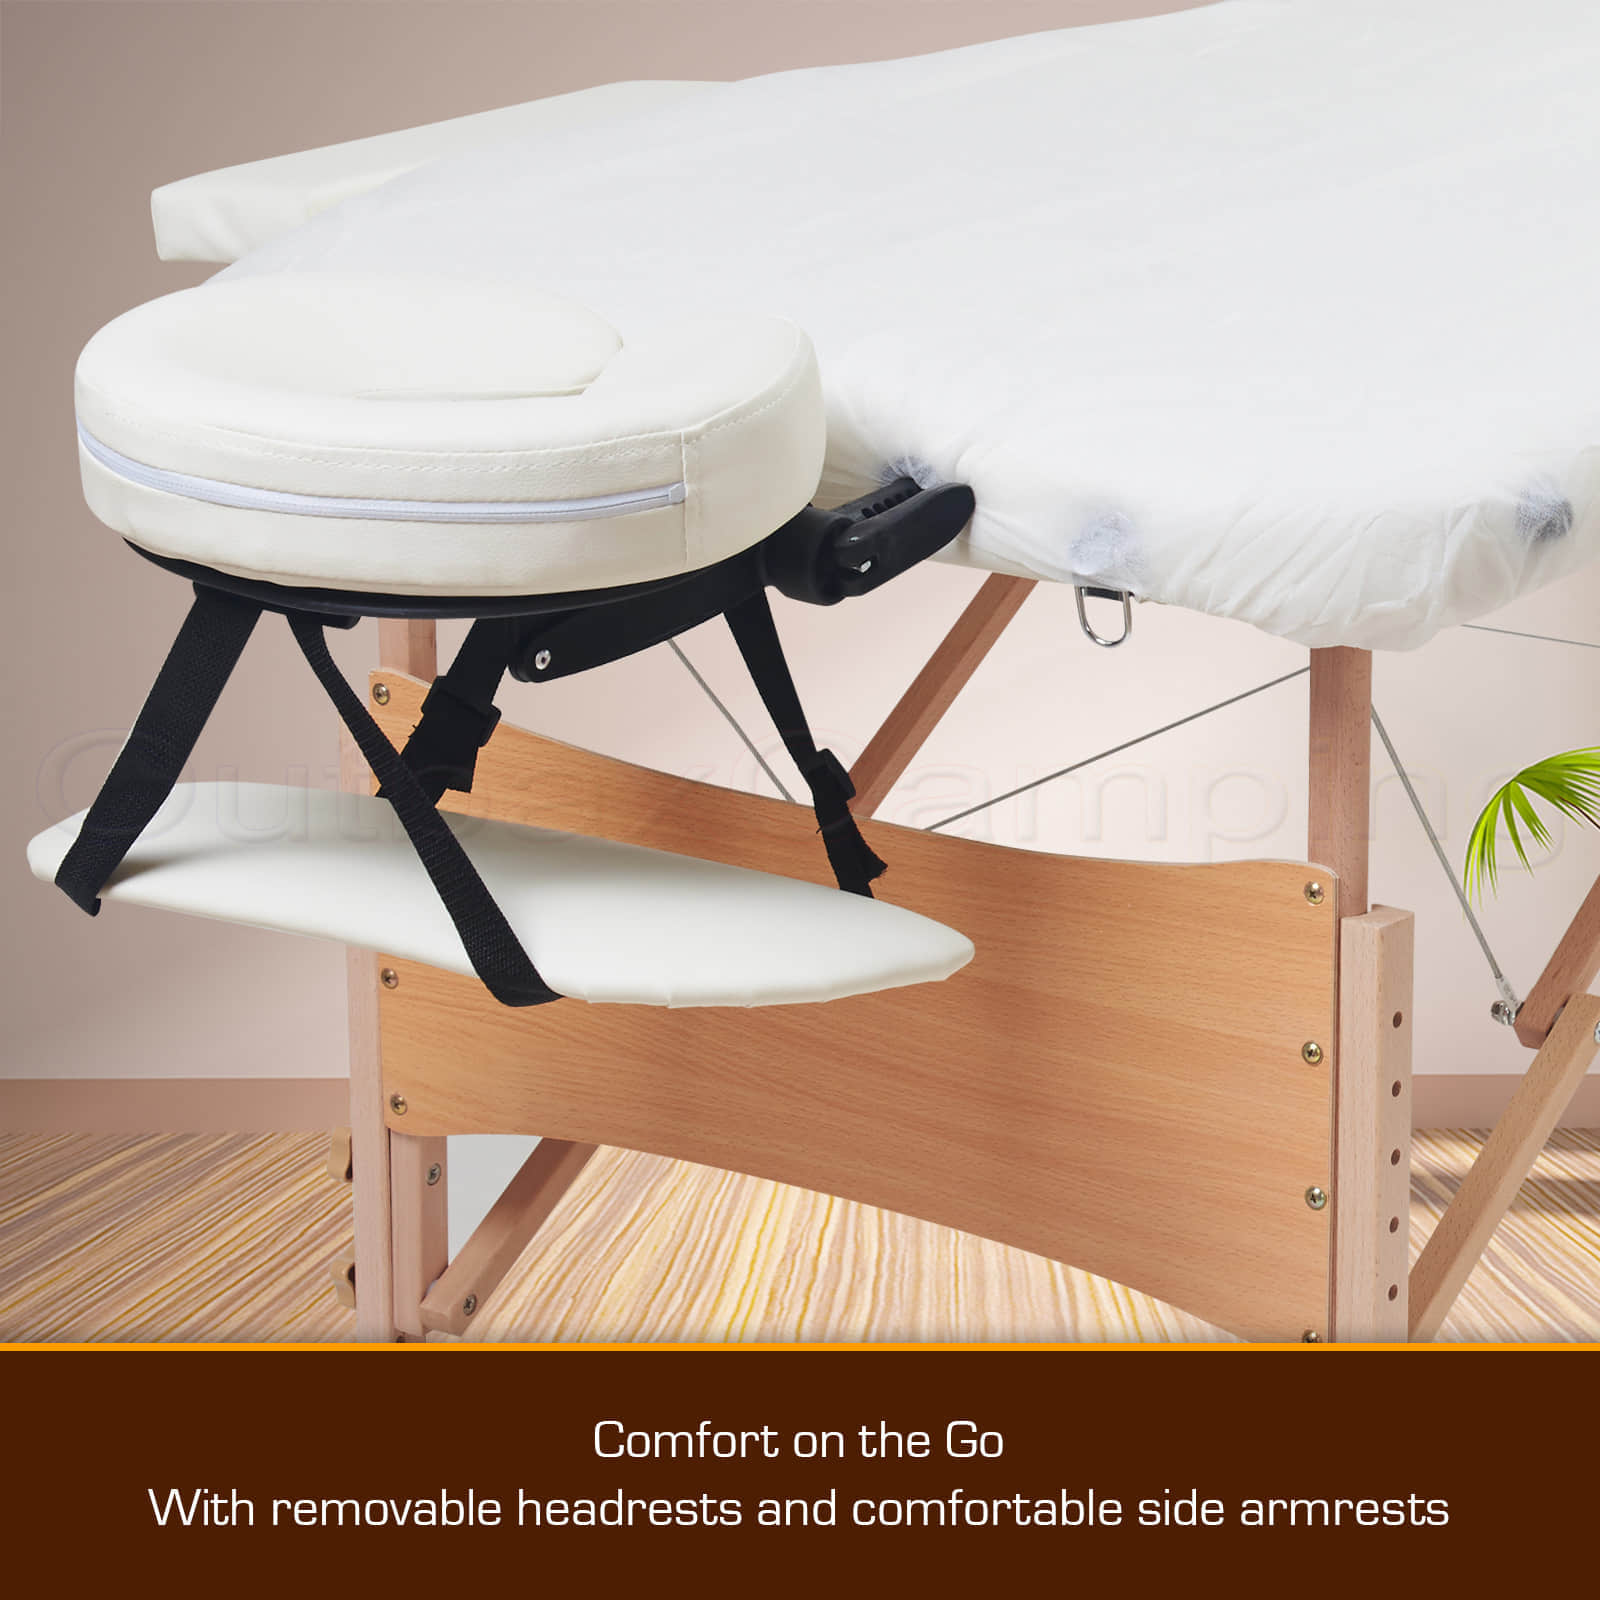 PORTABLE WOODEN MASSAGE BED FOLDING TABLE Beauty Therapy Treatment. Full resolution‎  image, nominally Width 1600 Height 1600 pixels, image with #431E0A.